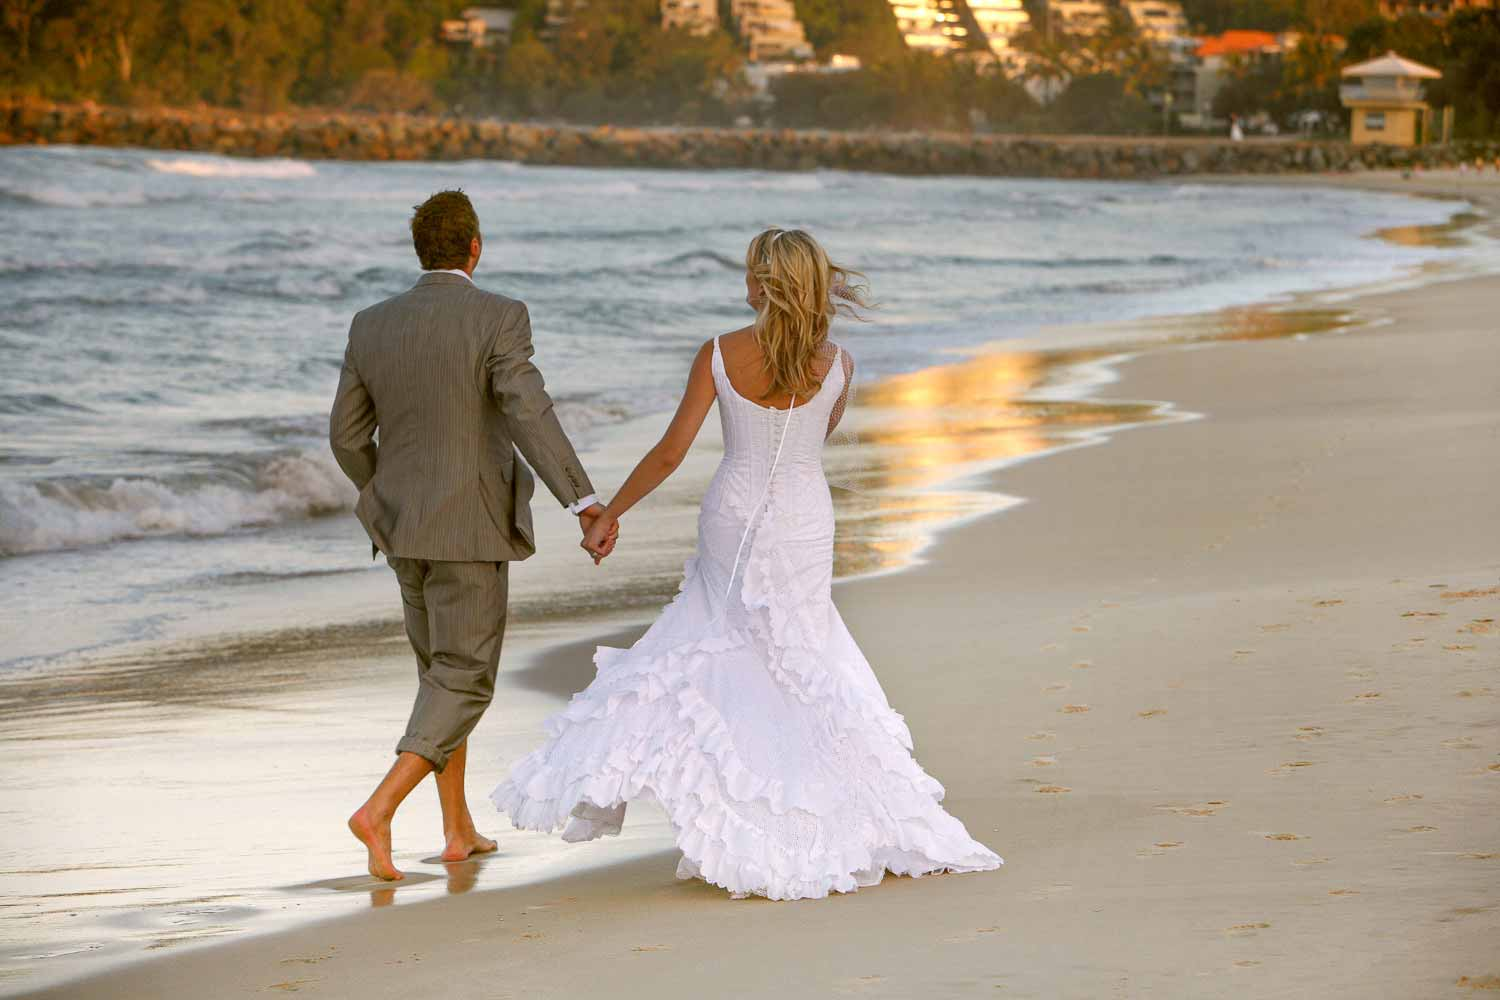 photographer wedding packages noosa hastings street beach with bride and groom on their wedding day